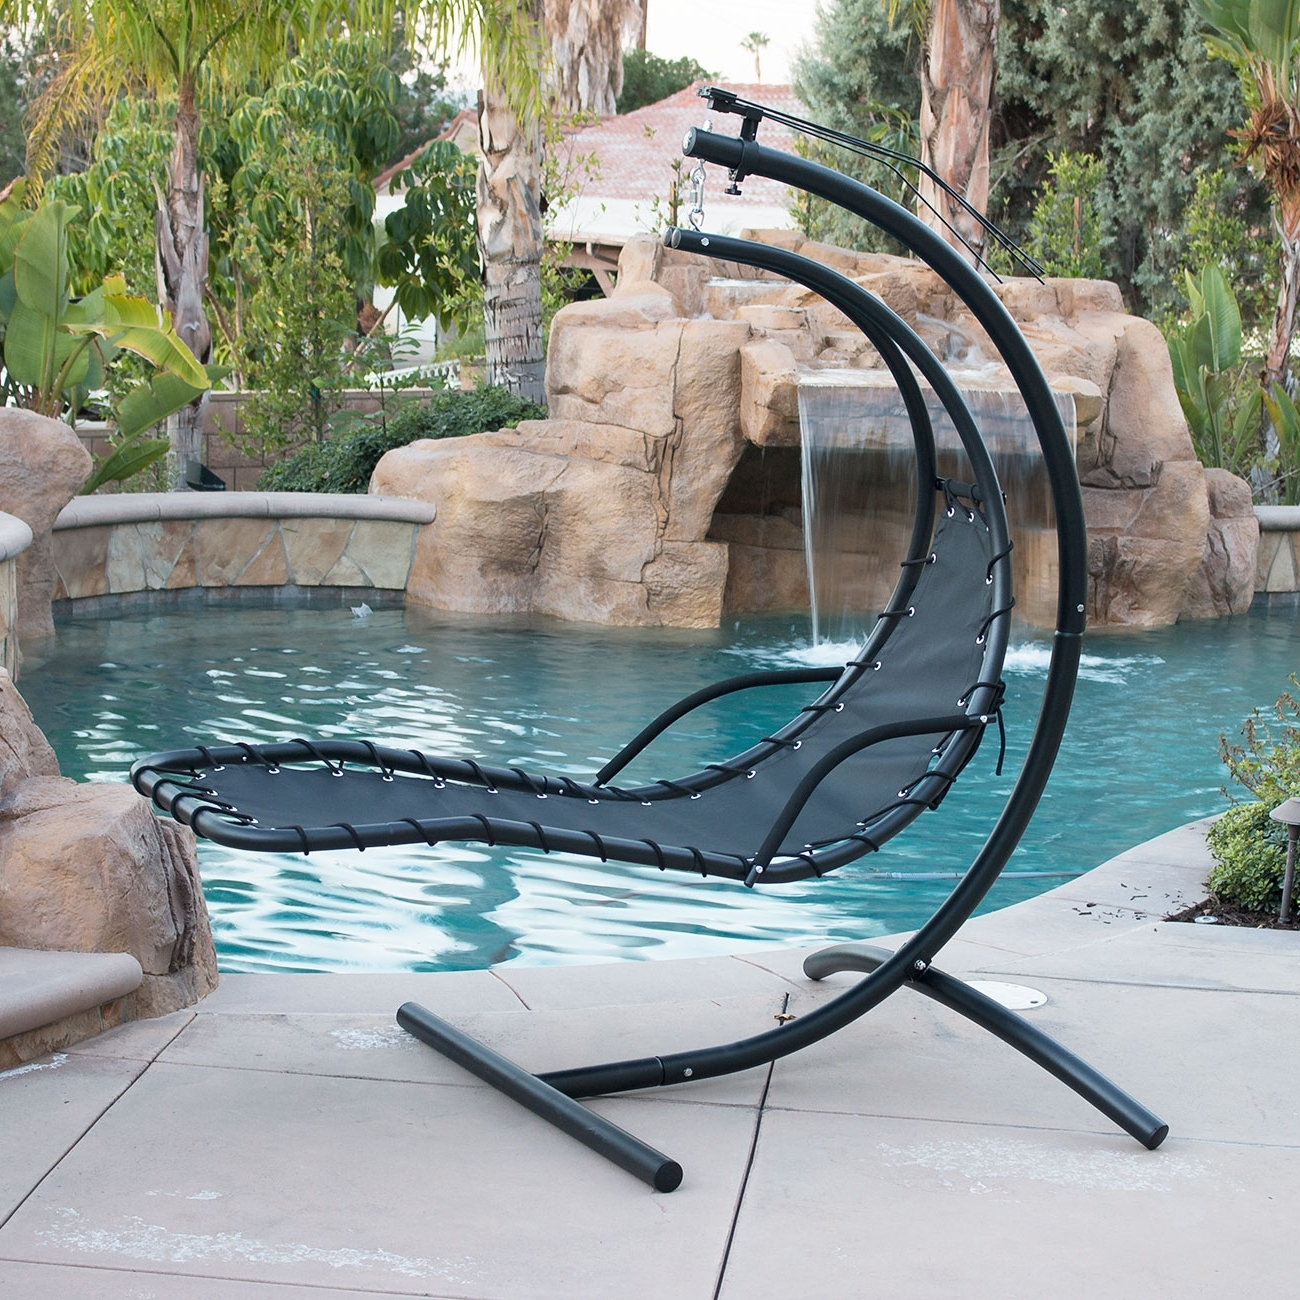 Outdoor Chaise Lounge Chairs With Canopy Regarding Well Known Outdoor Hanging Lounge Chair • Lounge Chairs Ideas (View 13 of 15)